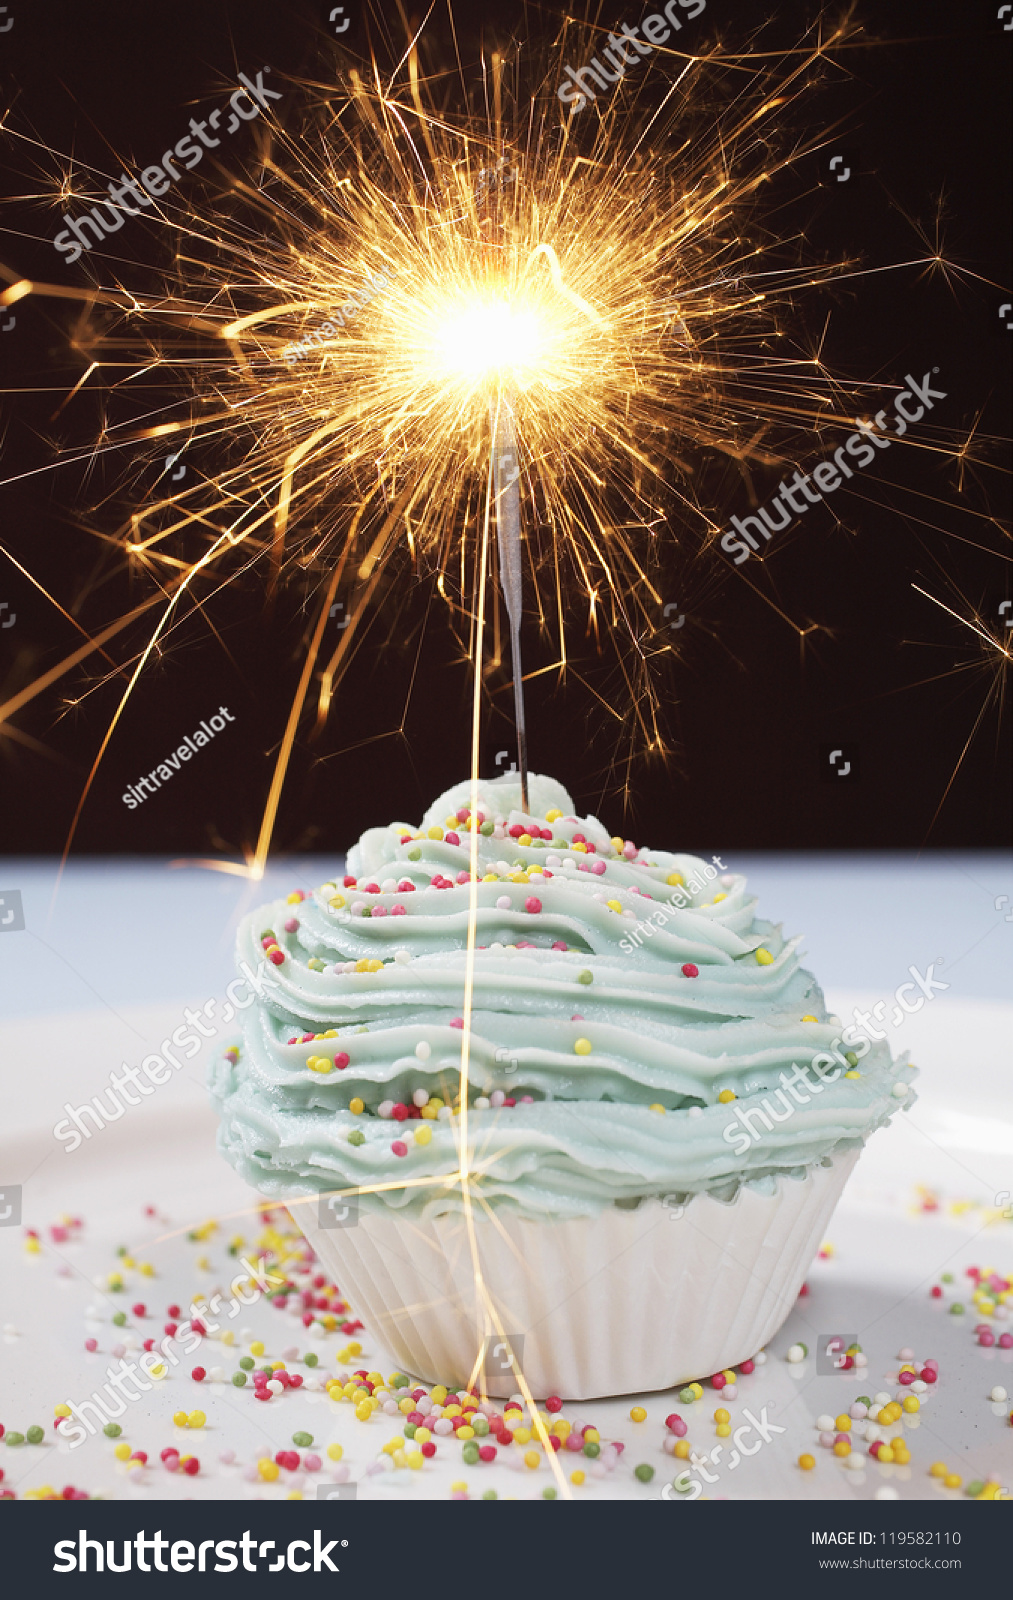 Baked Cupcake On Table With Sparkling Candle Isolated Over Black Background